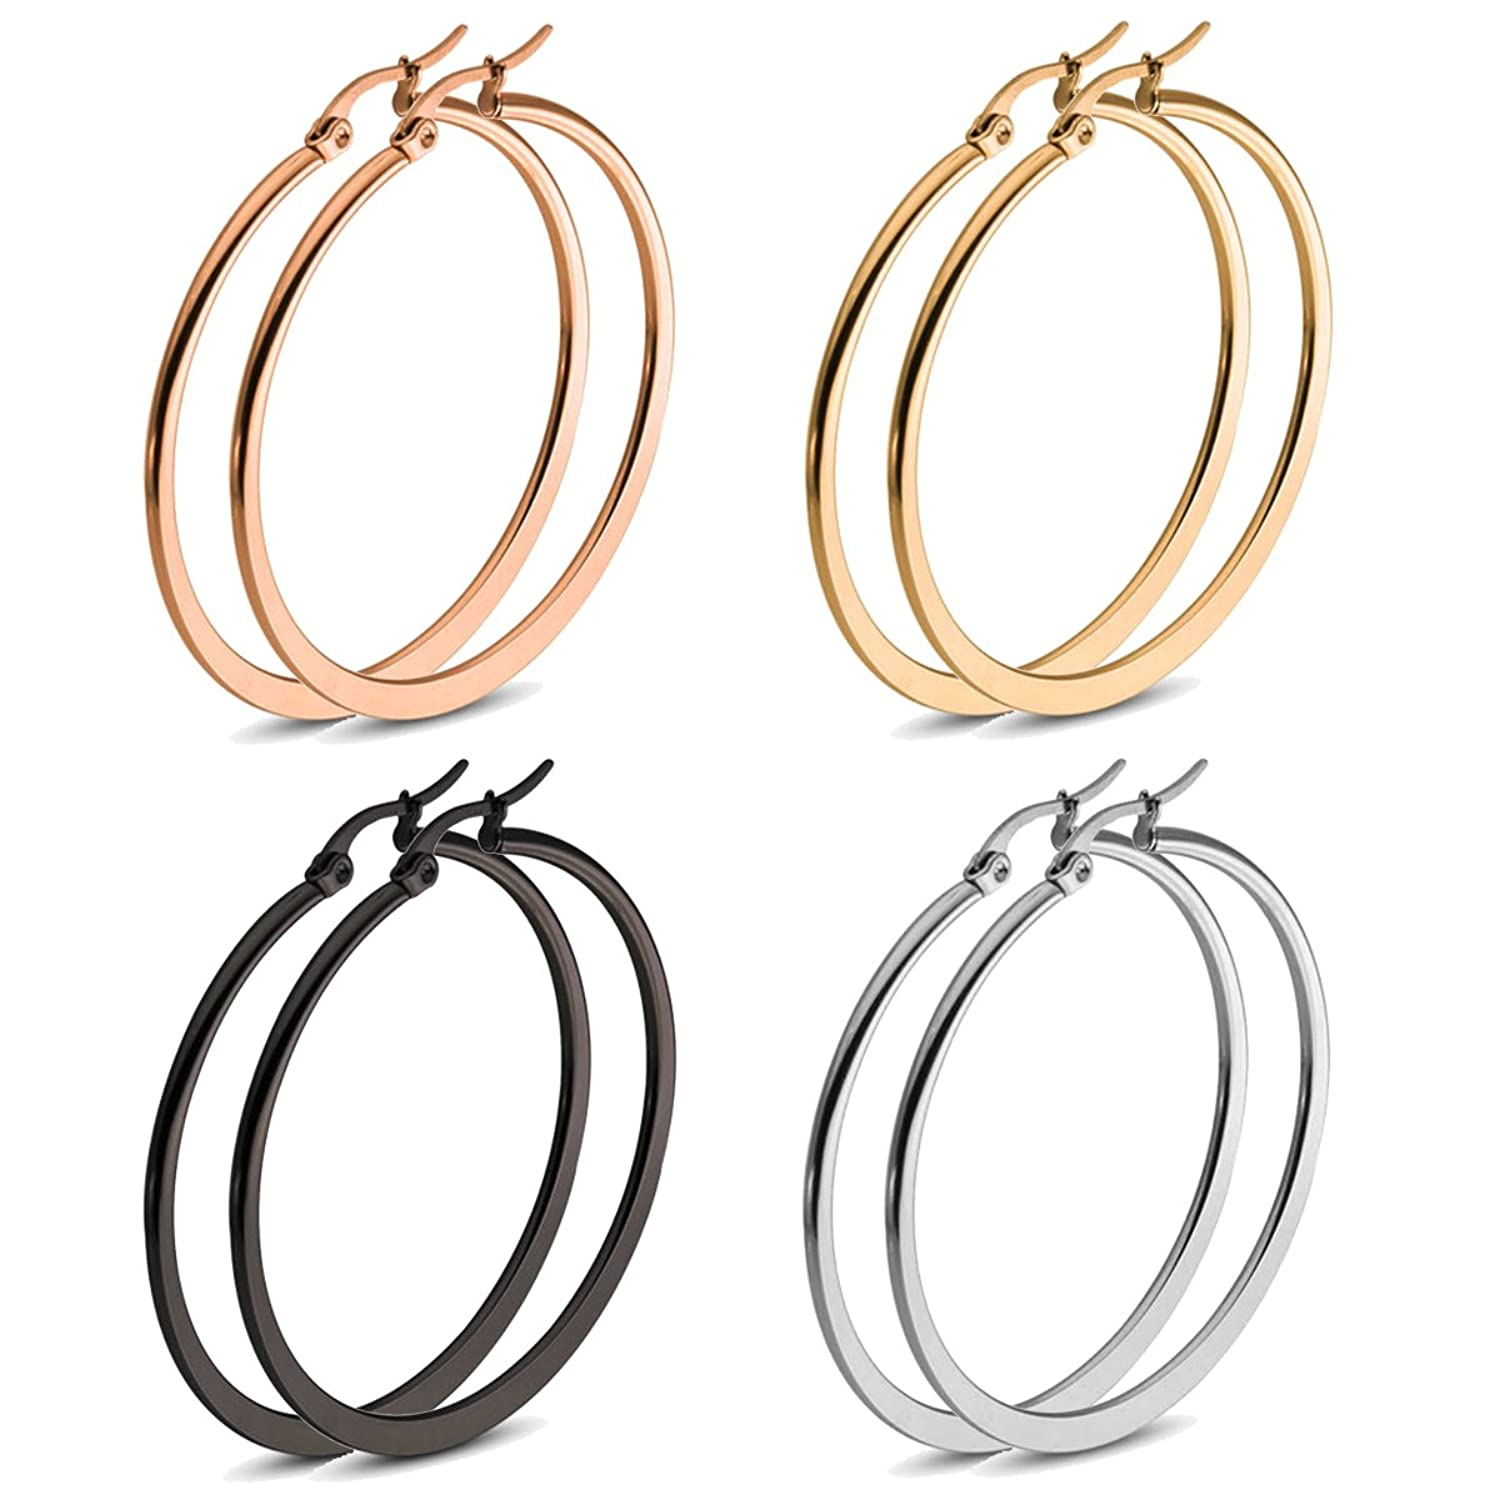 ALoveSoul Hypoallergenic Gold Hoop Earrings - Include Silver Rose-gold and Black Flattened Endless Hoops for Women 4 Pairs Set